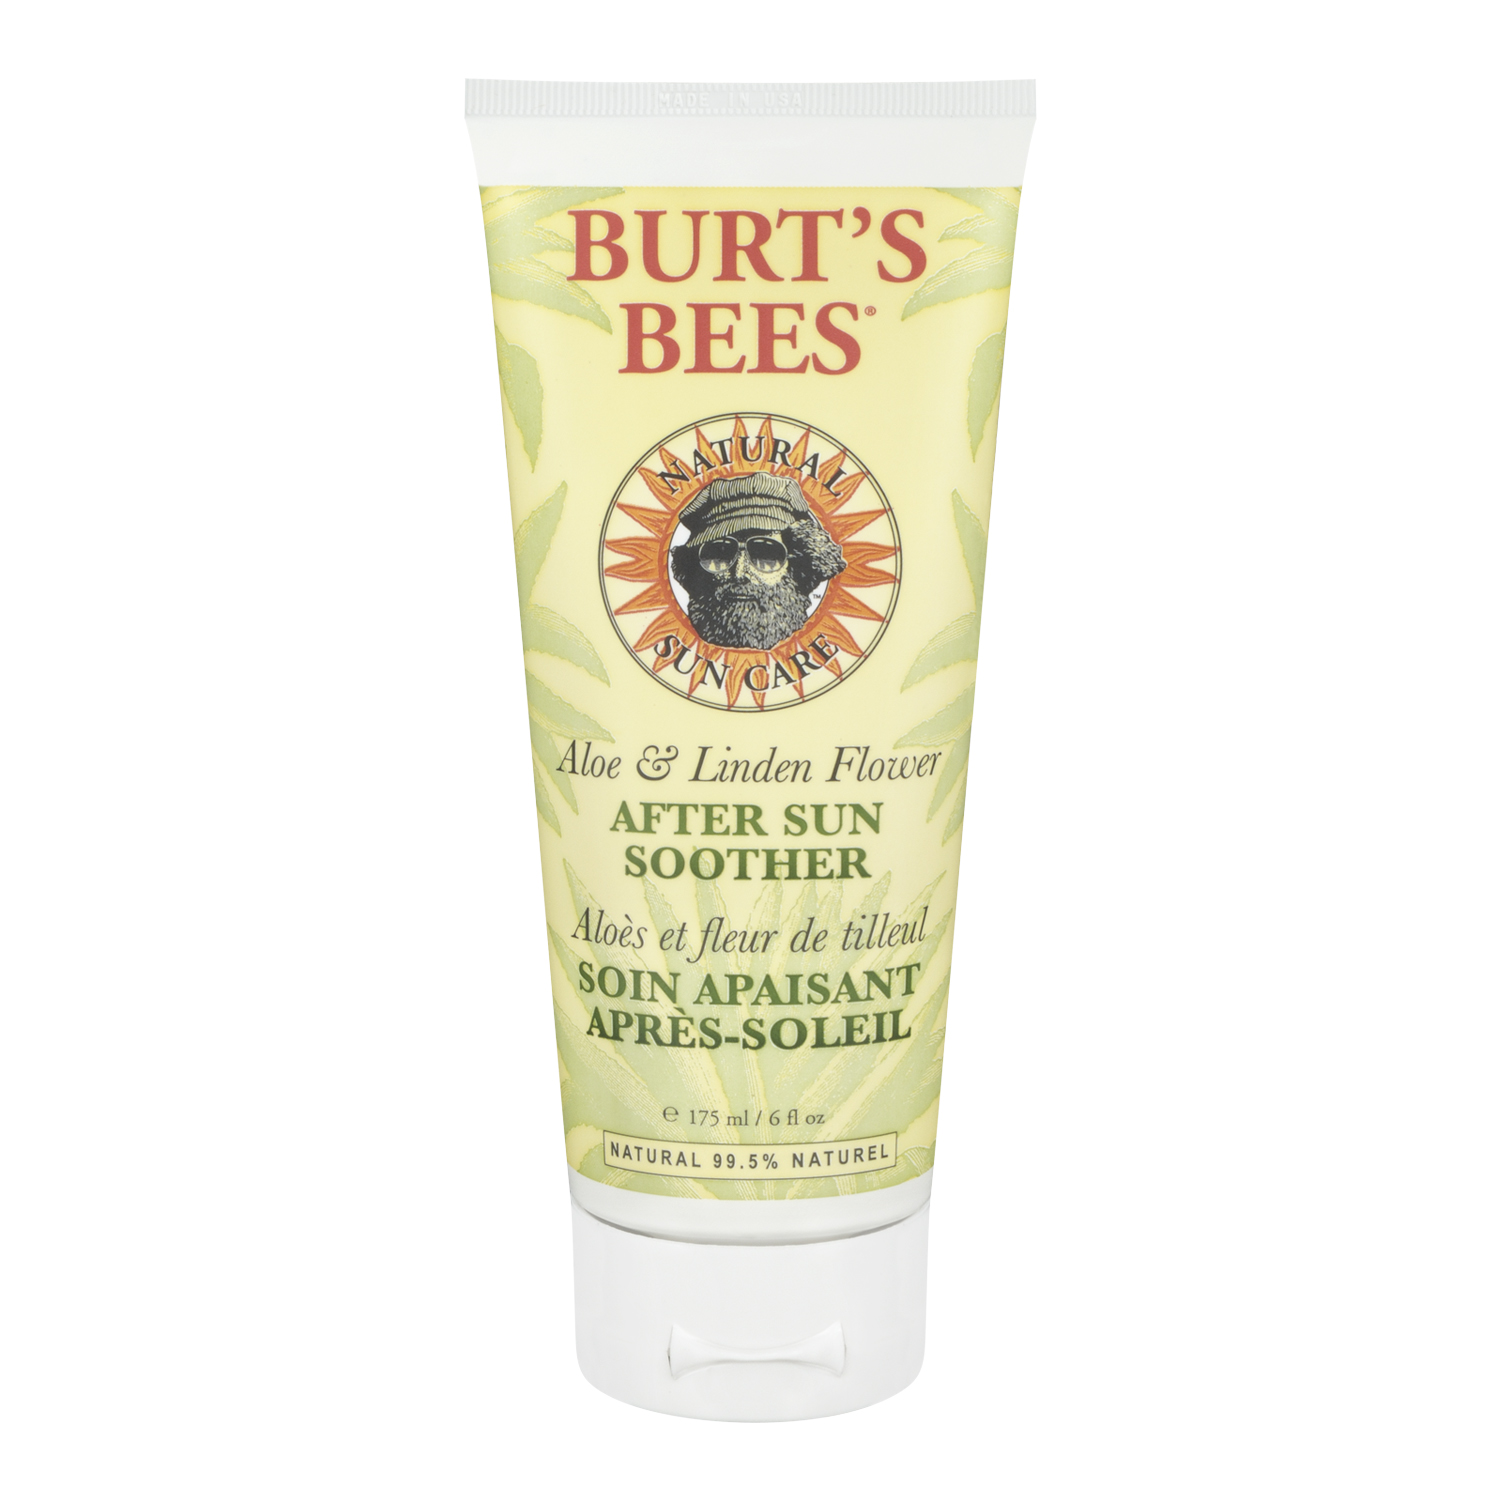 Burt's Bees Aloe & Linden Flower After Sun Soother